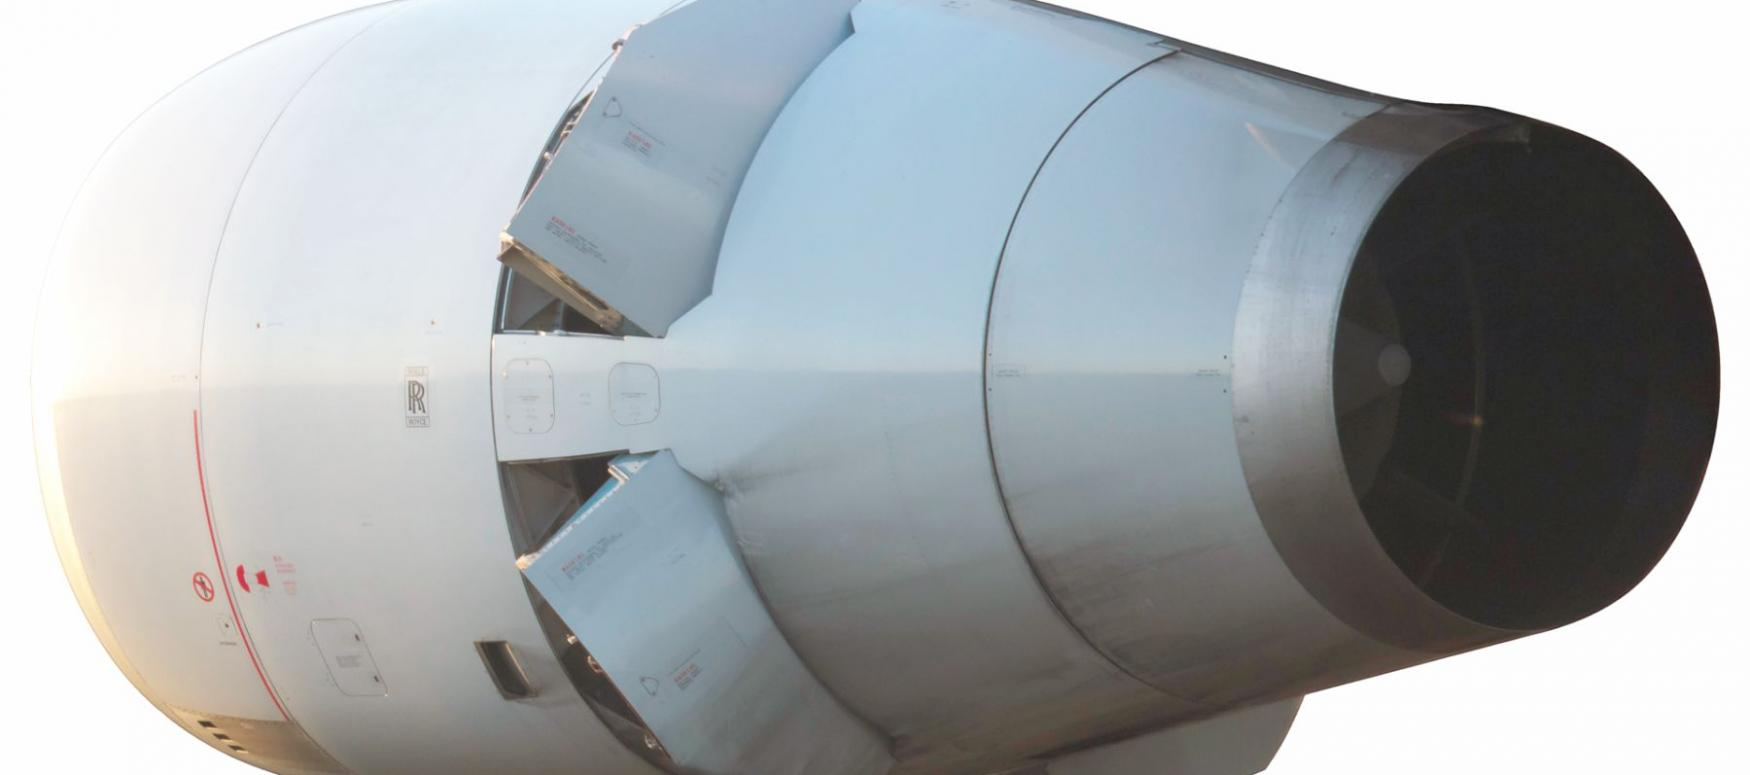 Airbus A330ceo thrust reversers